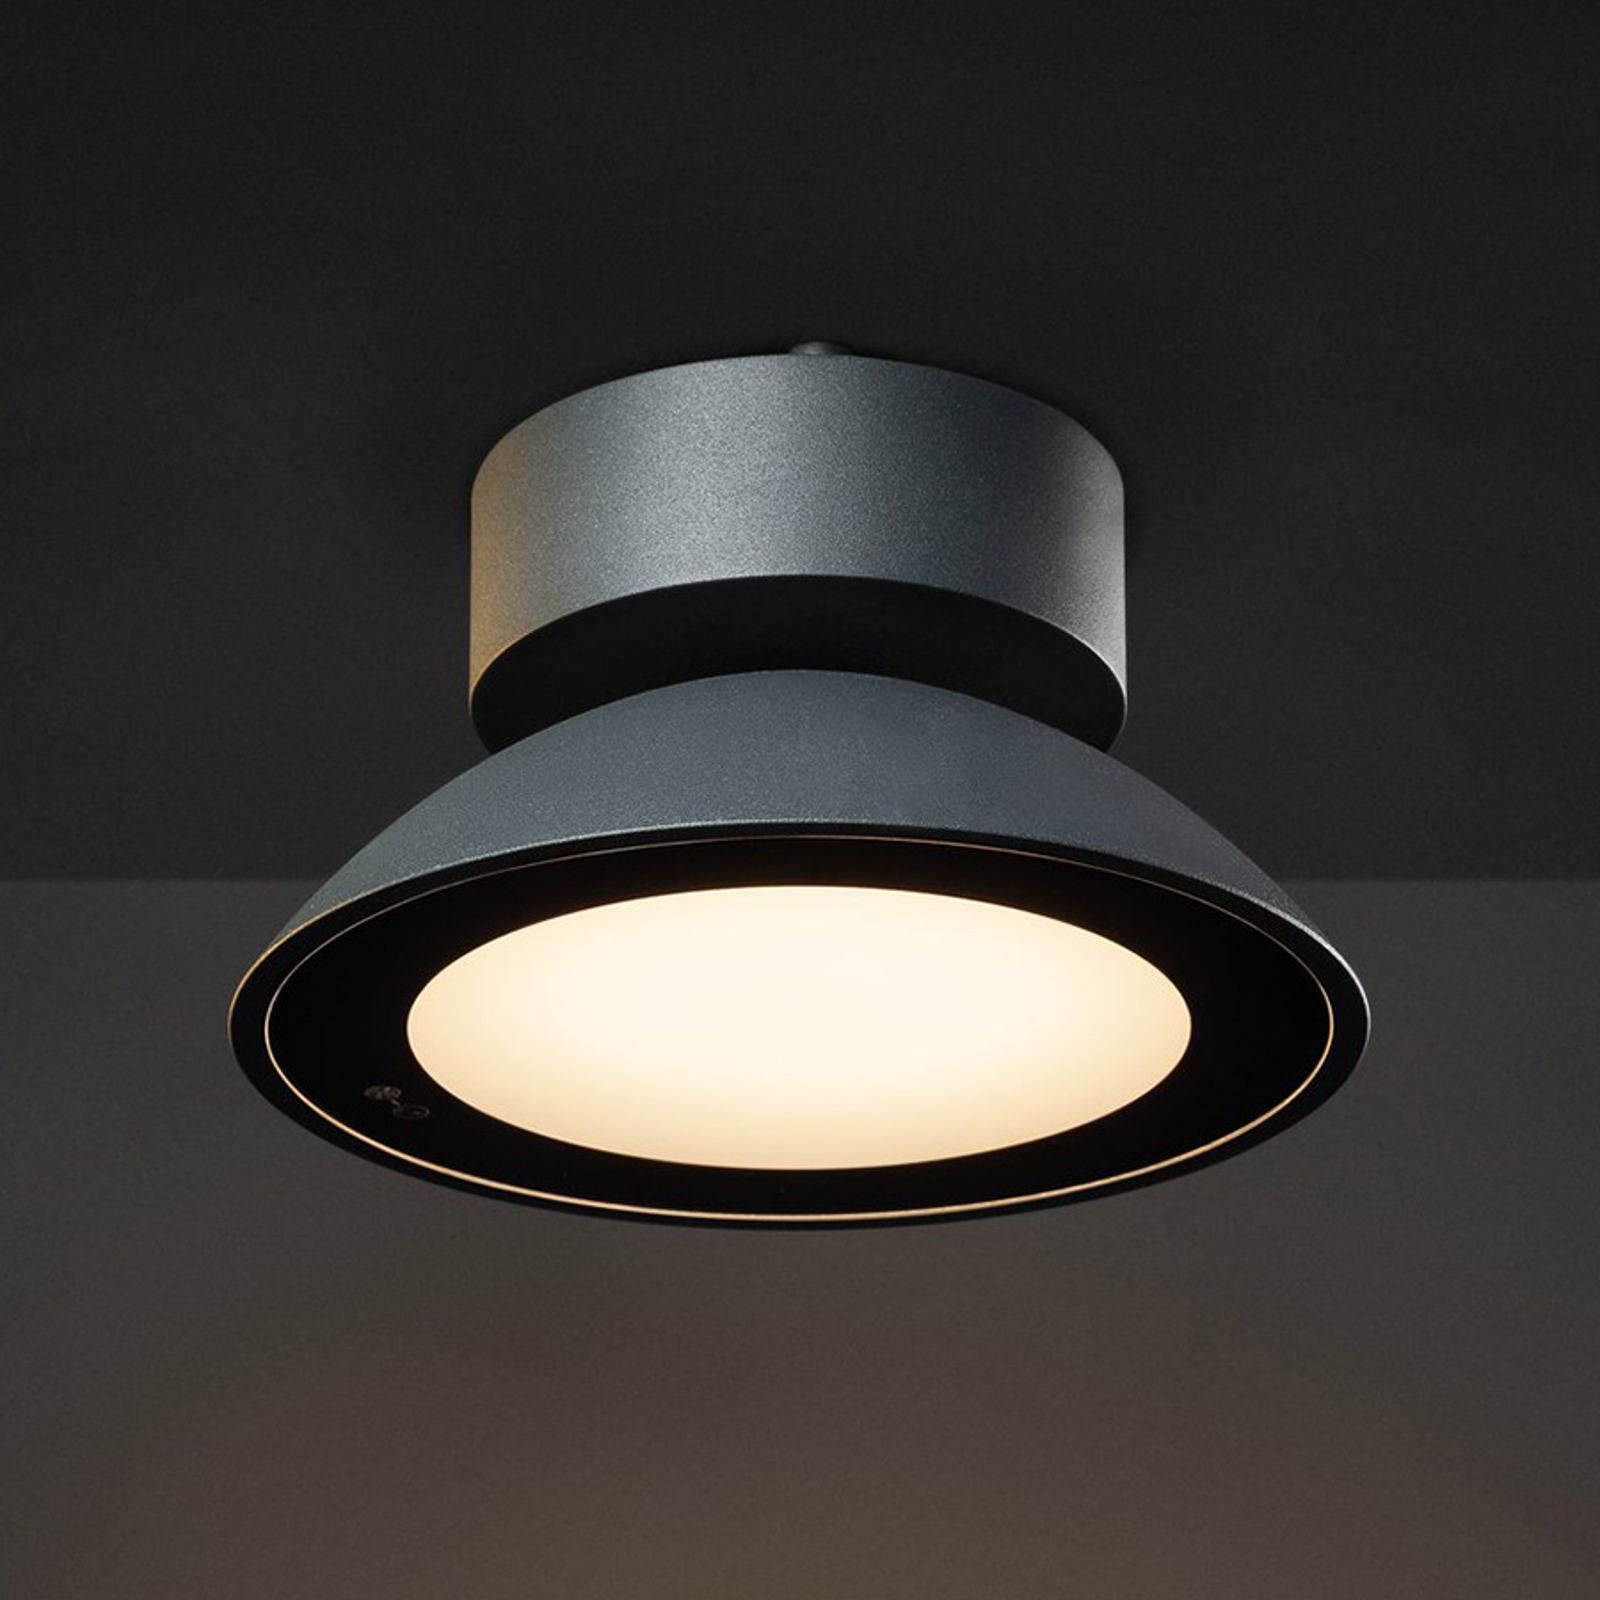 SLV Malu plafonnier d'ext. LED, rond, anthracite